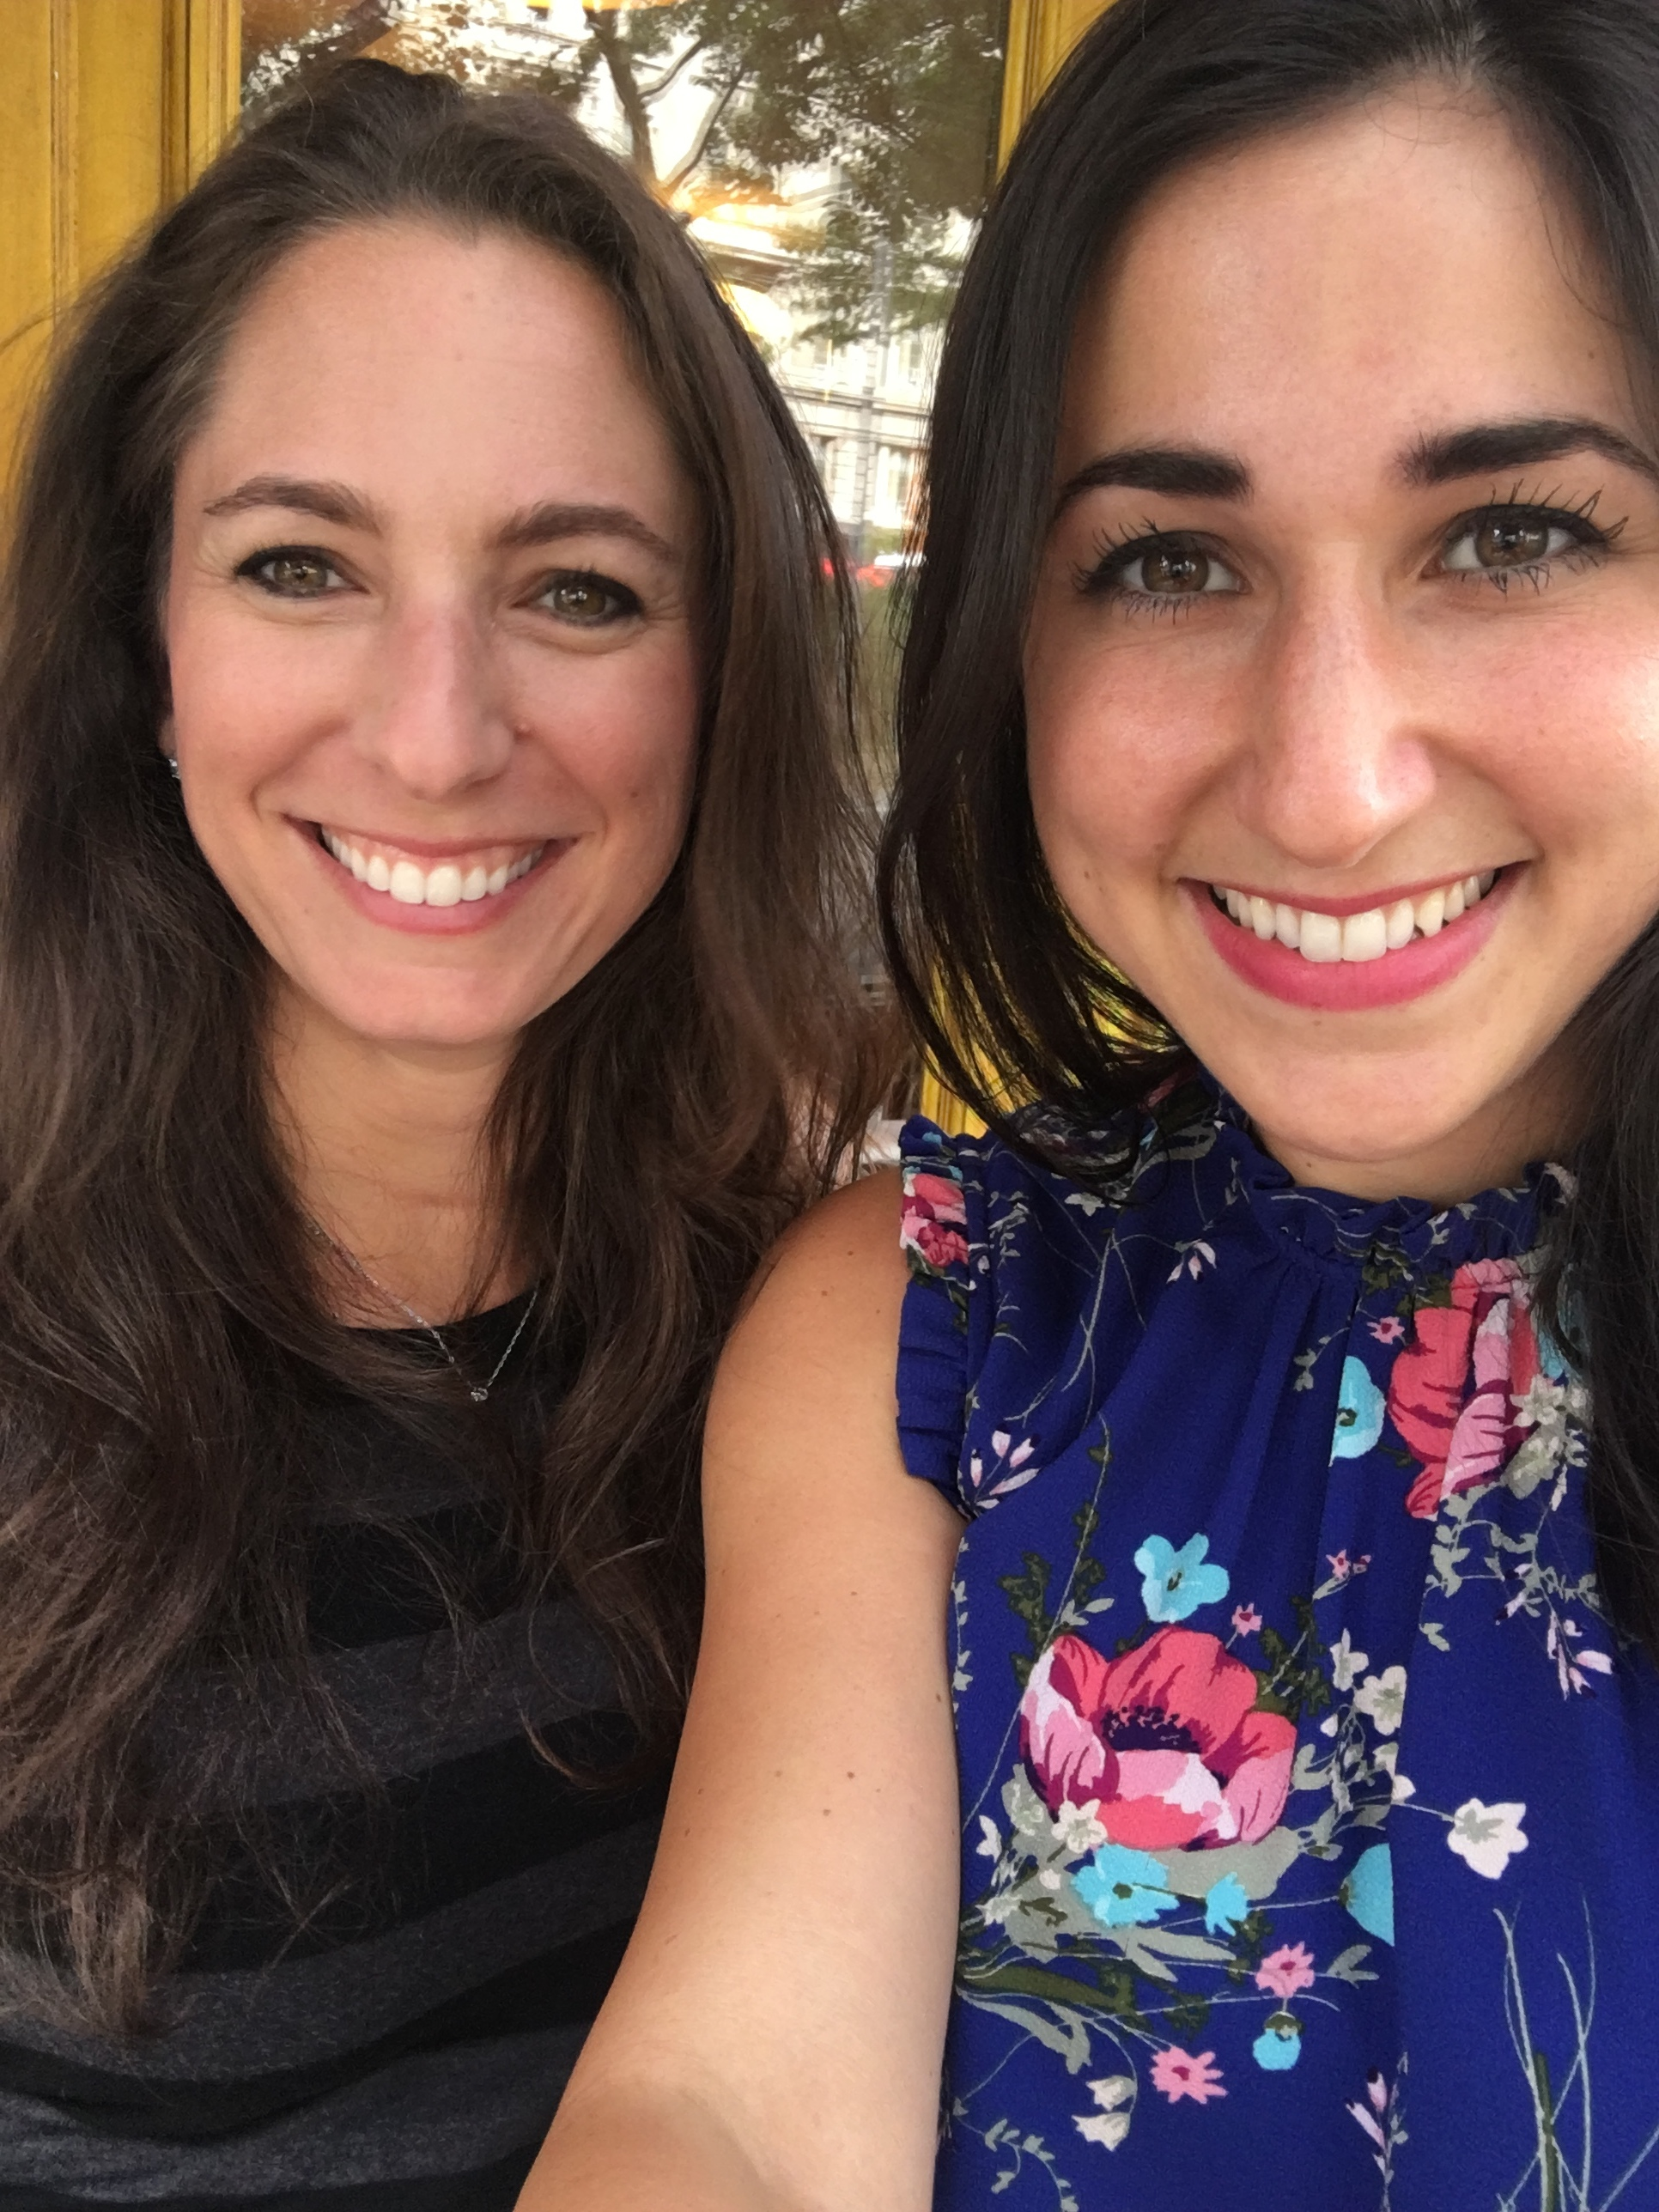 Courtney Bernabei & Amanda Raposo, Co-Founders of Pal by Project Playdate